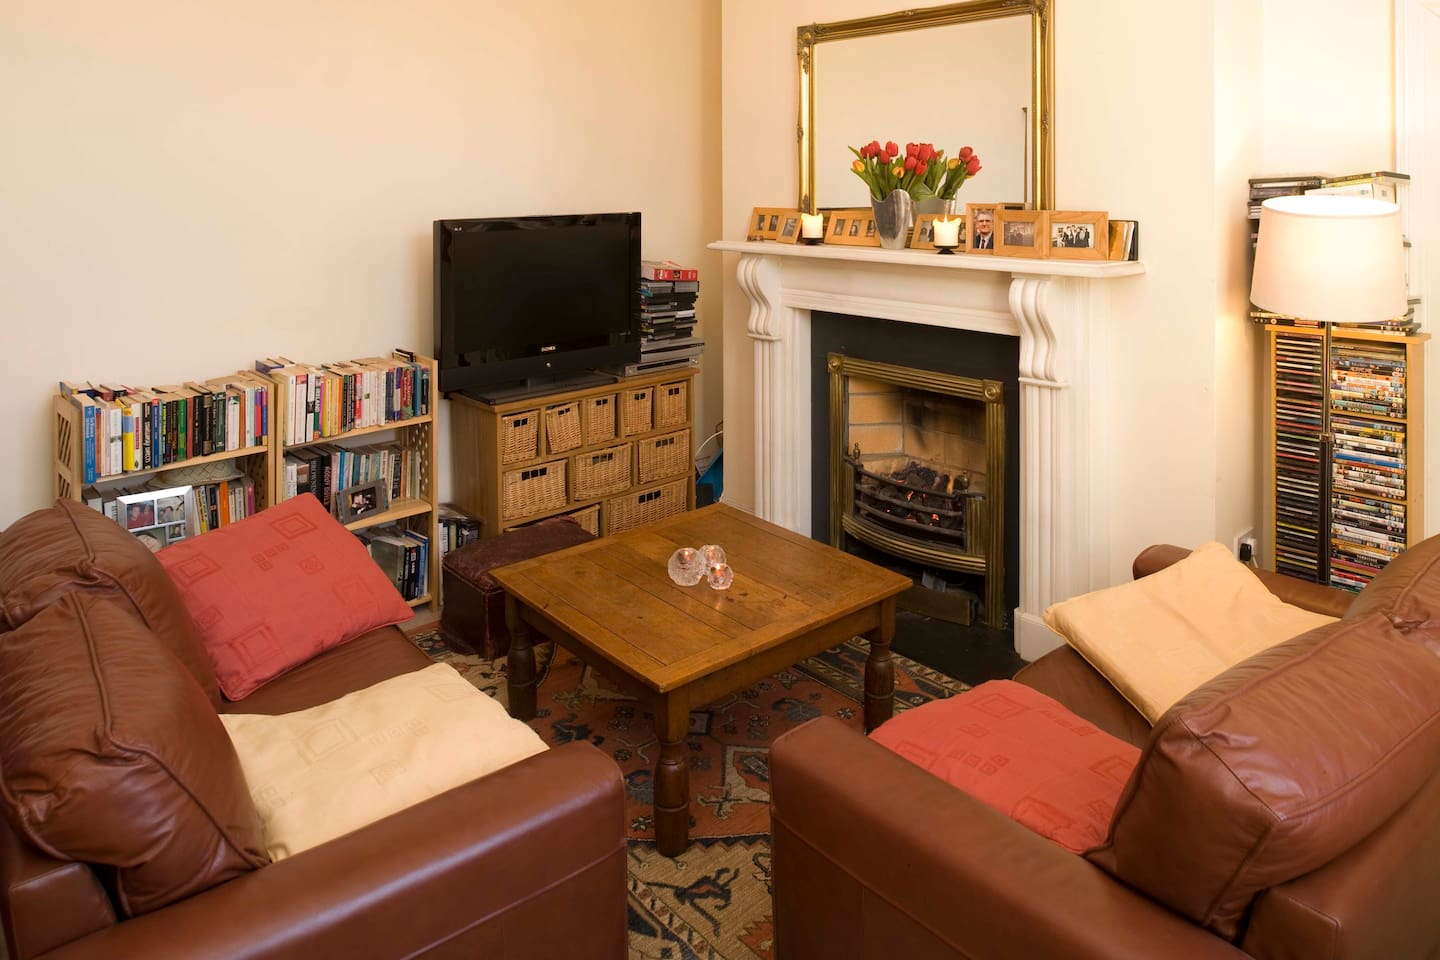 Living room, mantelpiece and gas fire.